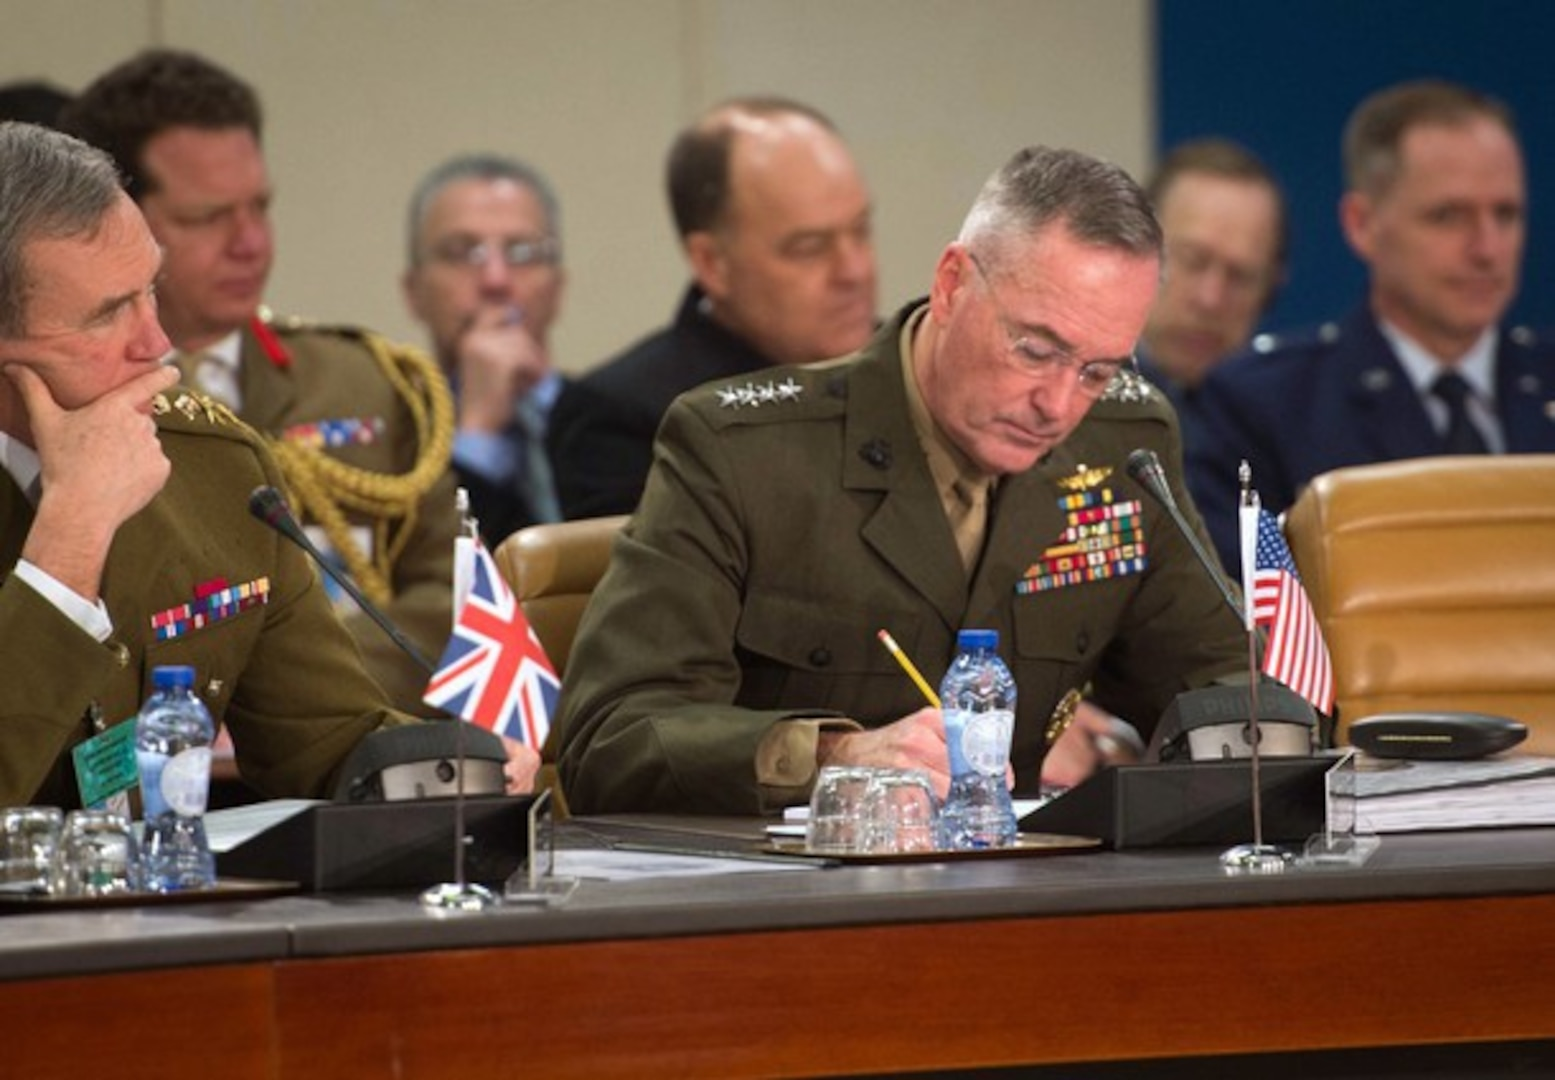 U.S. Marine Corps Gen. Joseph F. Dunford Jr., chairman of the Joint Chiefs of Staff, takes notes during a meeting at NATO headquarters in Brussels, Jan. 21, 2016. (DoD photo by D. Myles Cullen)